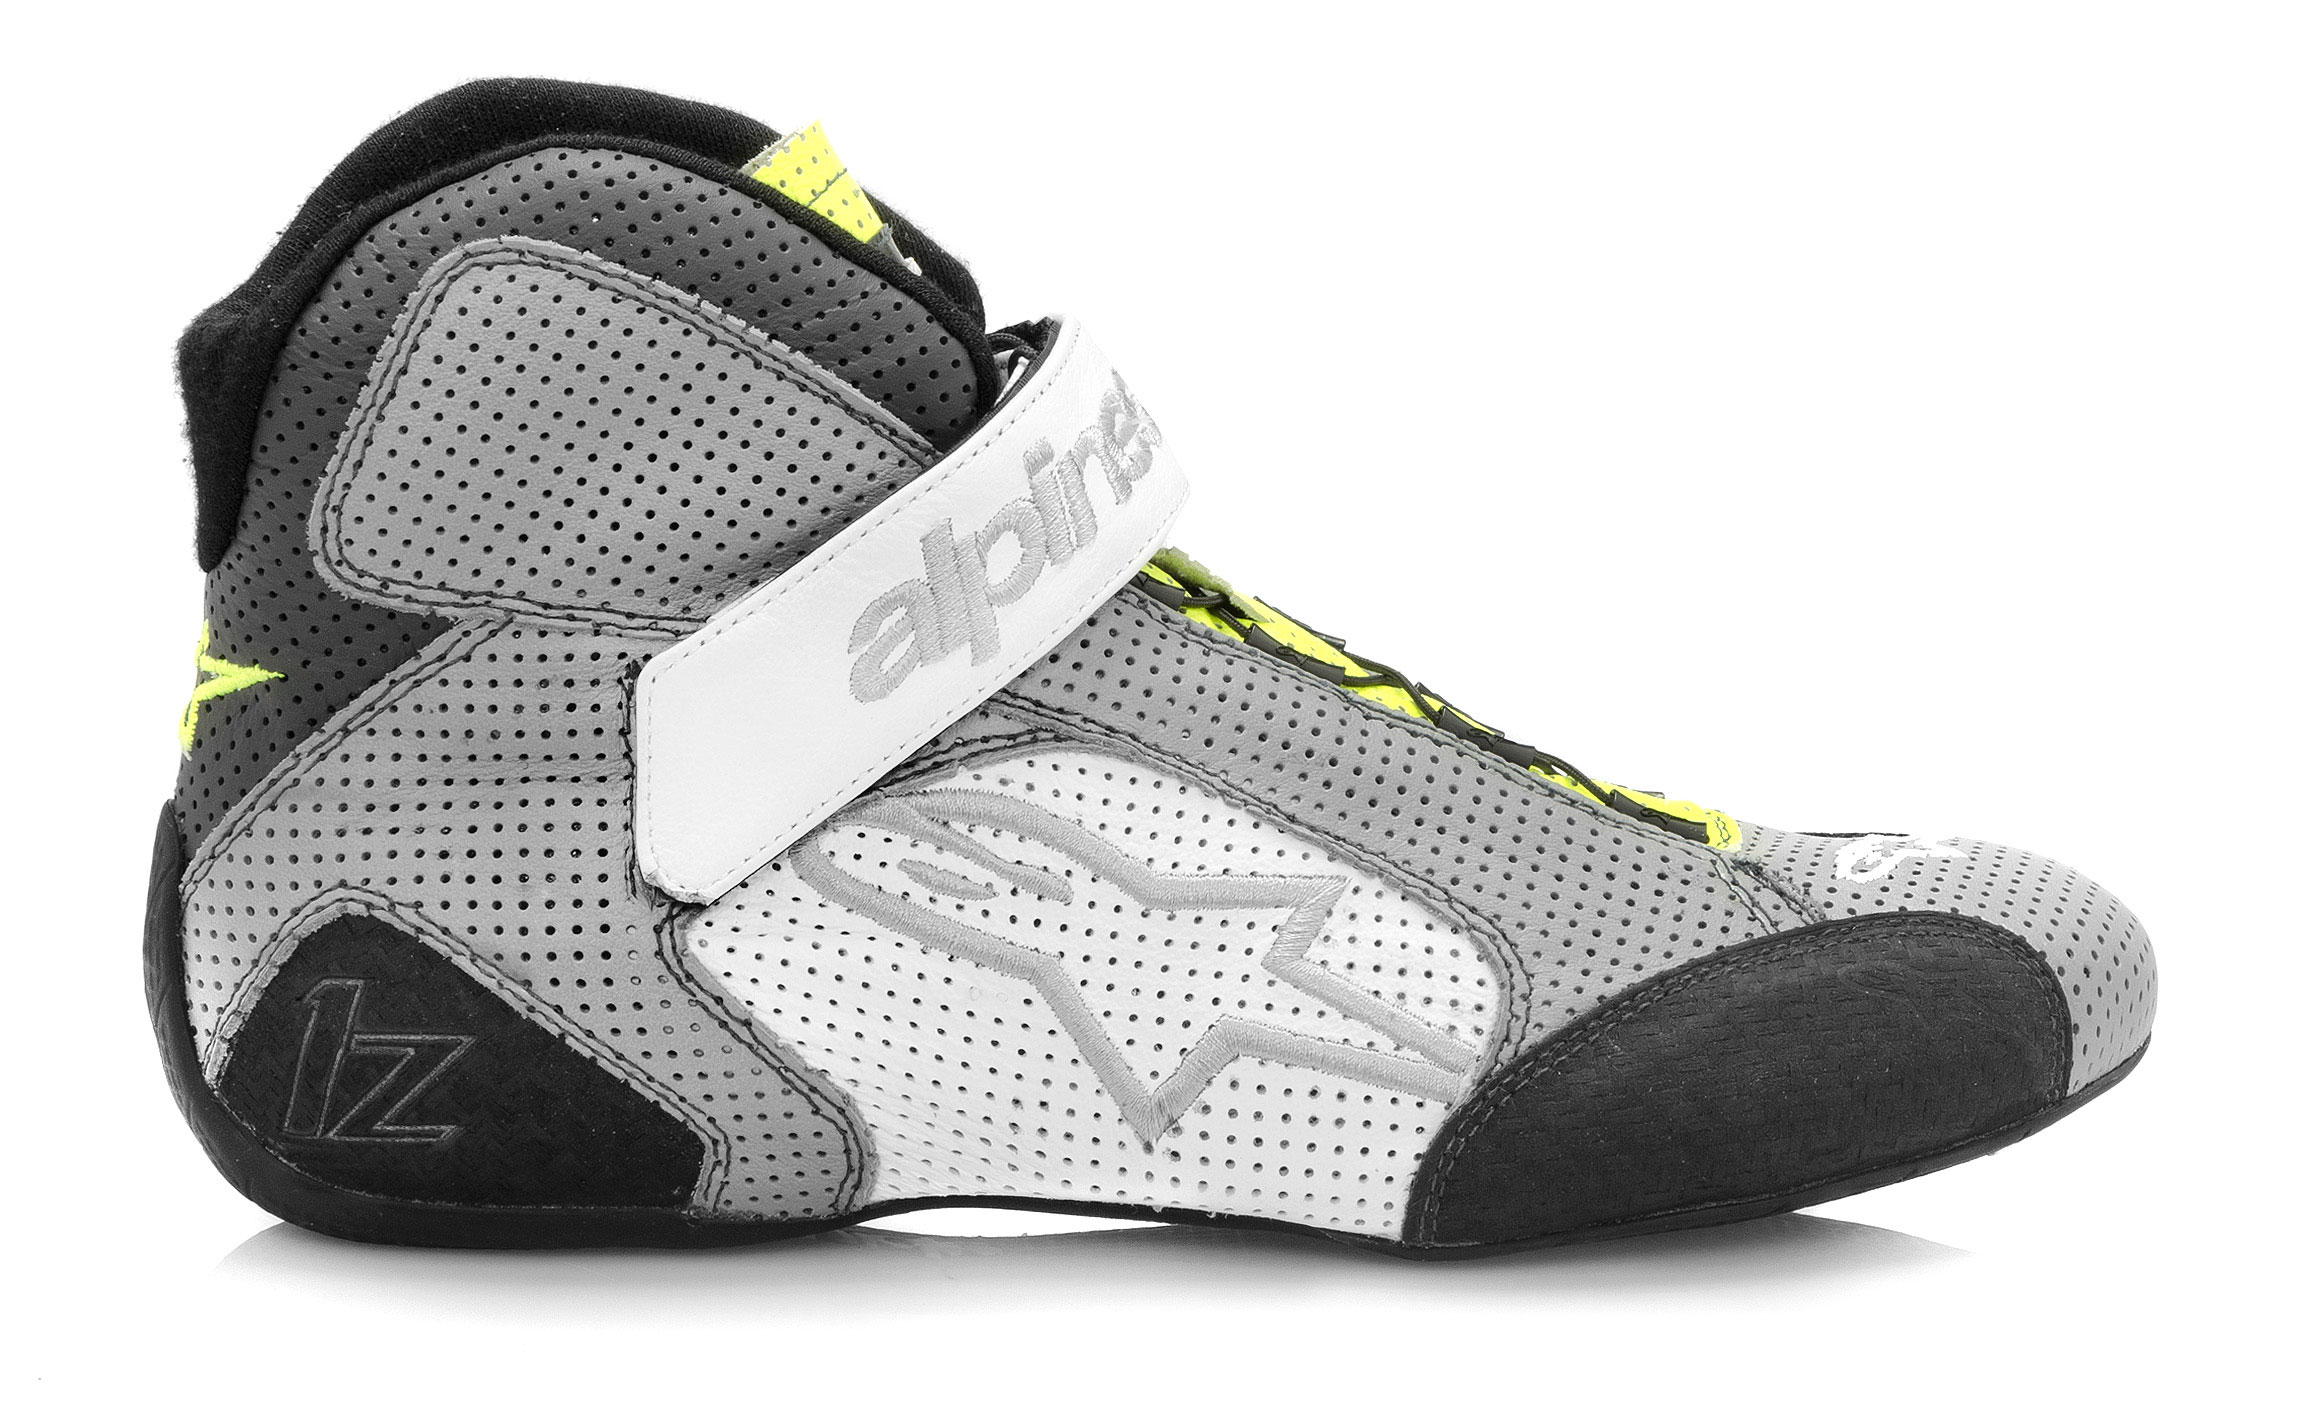 tech-1-z-gray-yellow-fluo-rot3